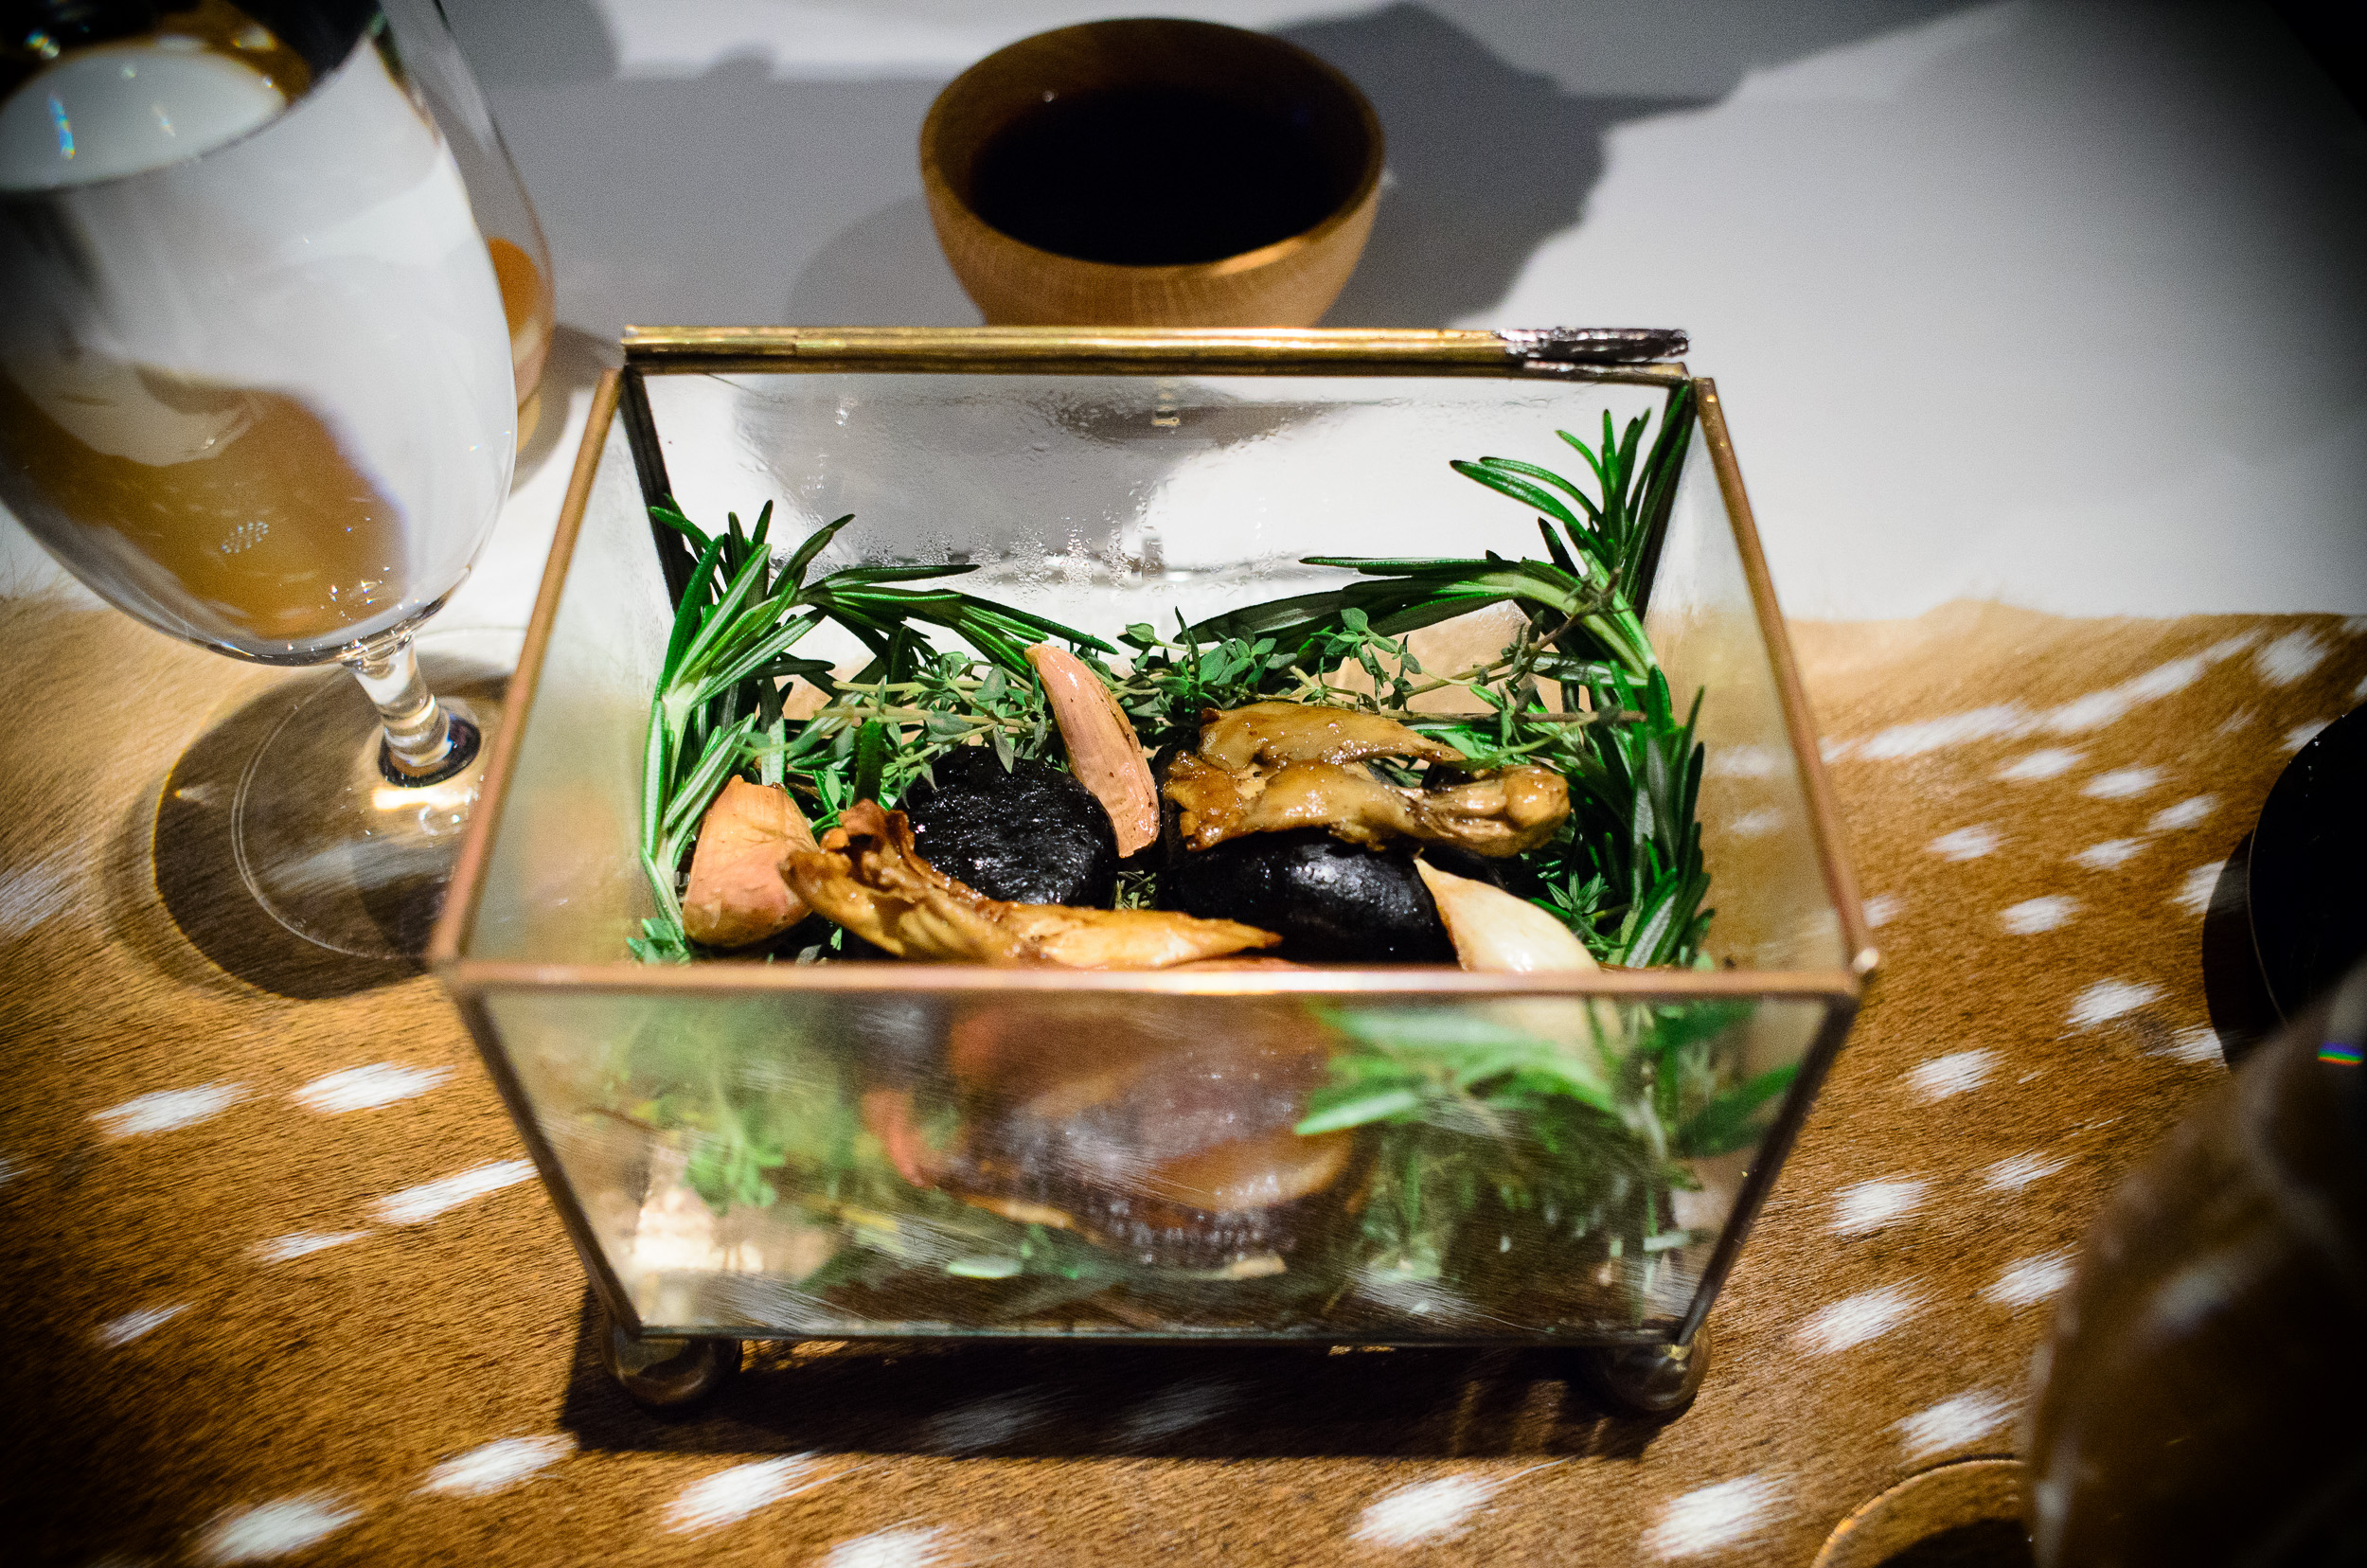 2nd Course: Hen of the Woods, inside the box